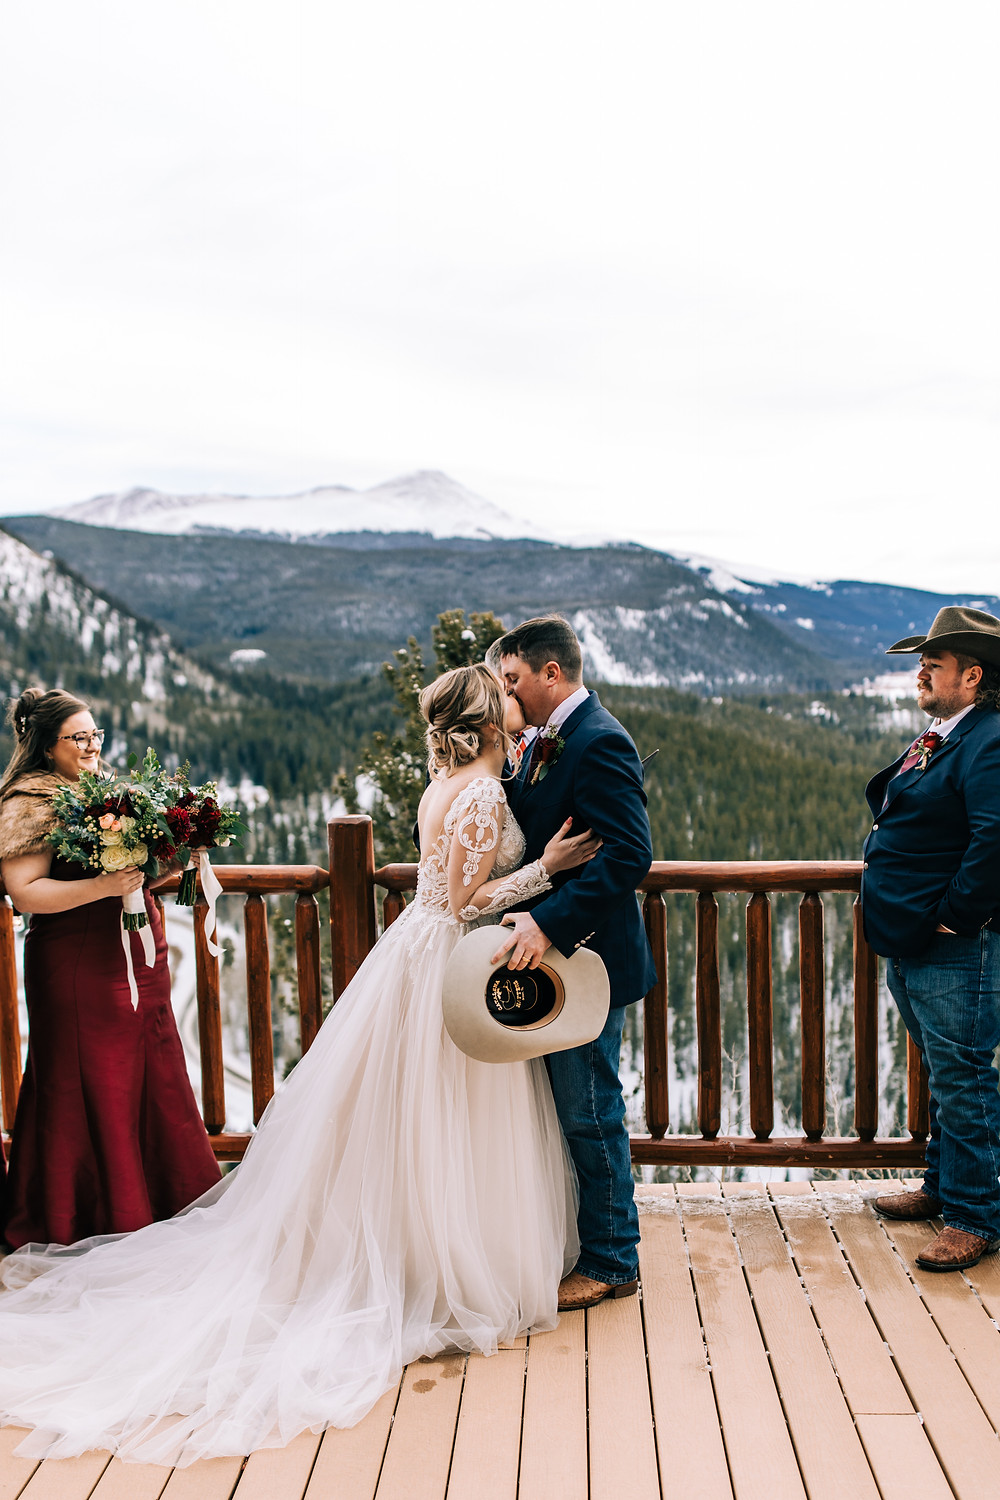 The Lodge at Breckenridge Wedding  - Breckenridge Wedding